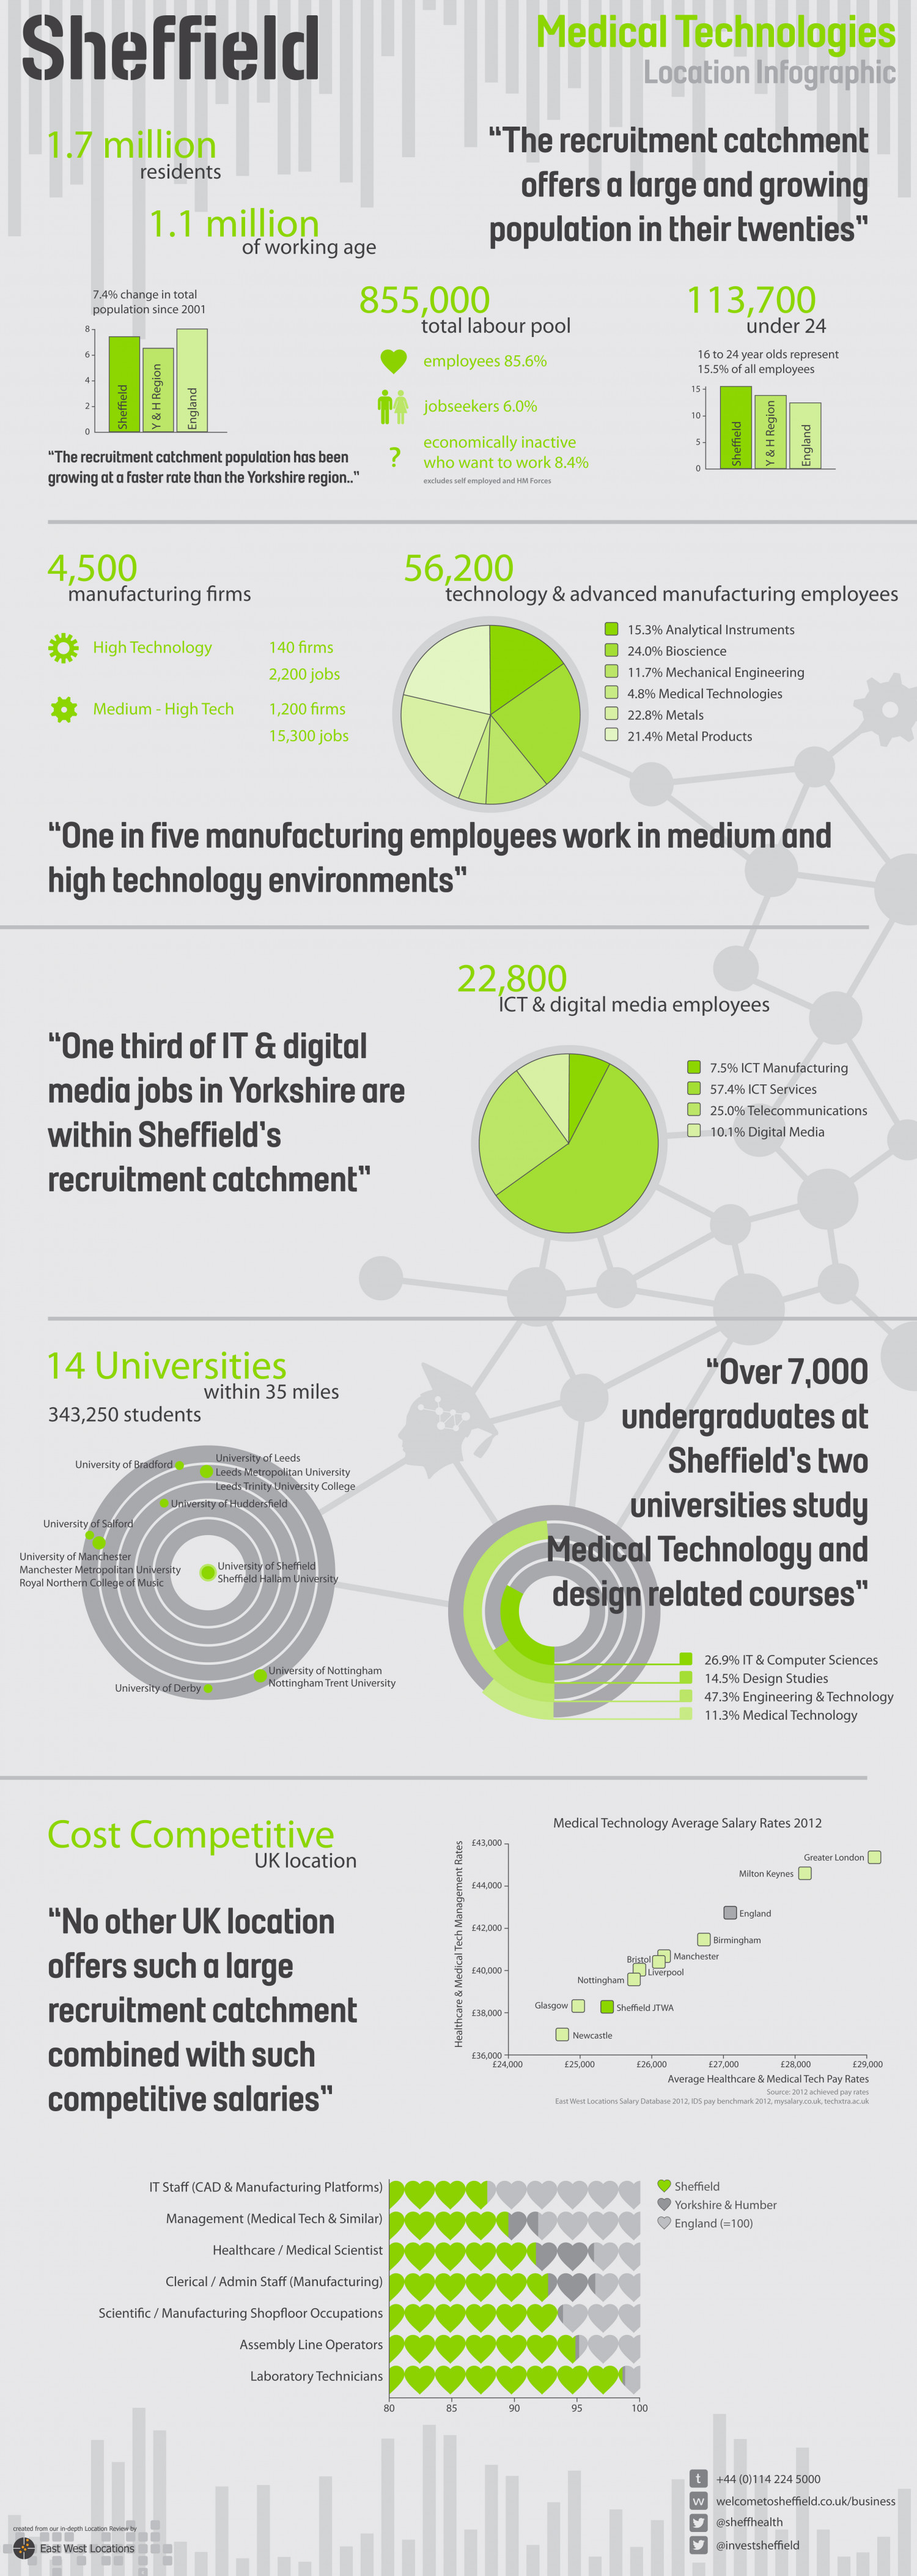 Sheffield Medical Technologies investment tool Infographic